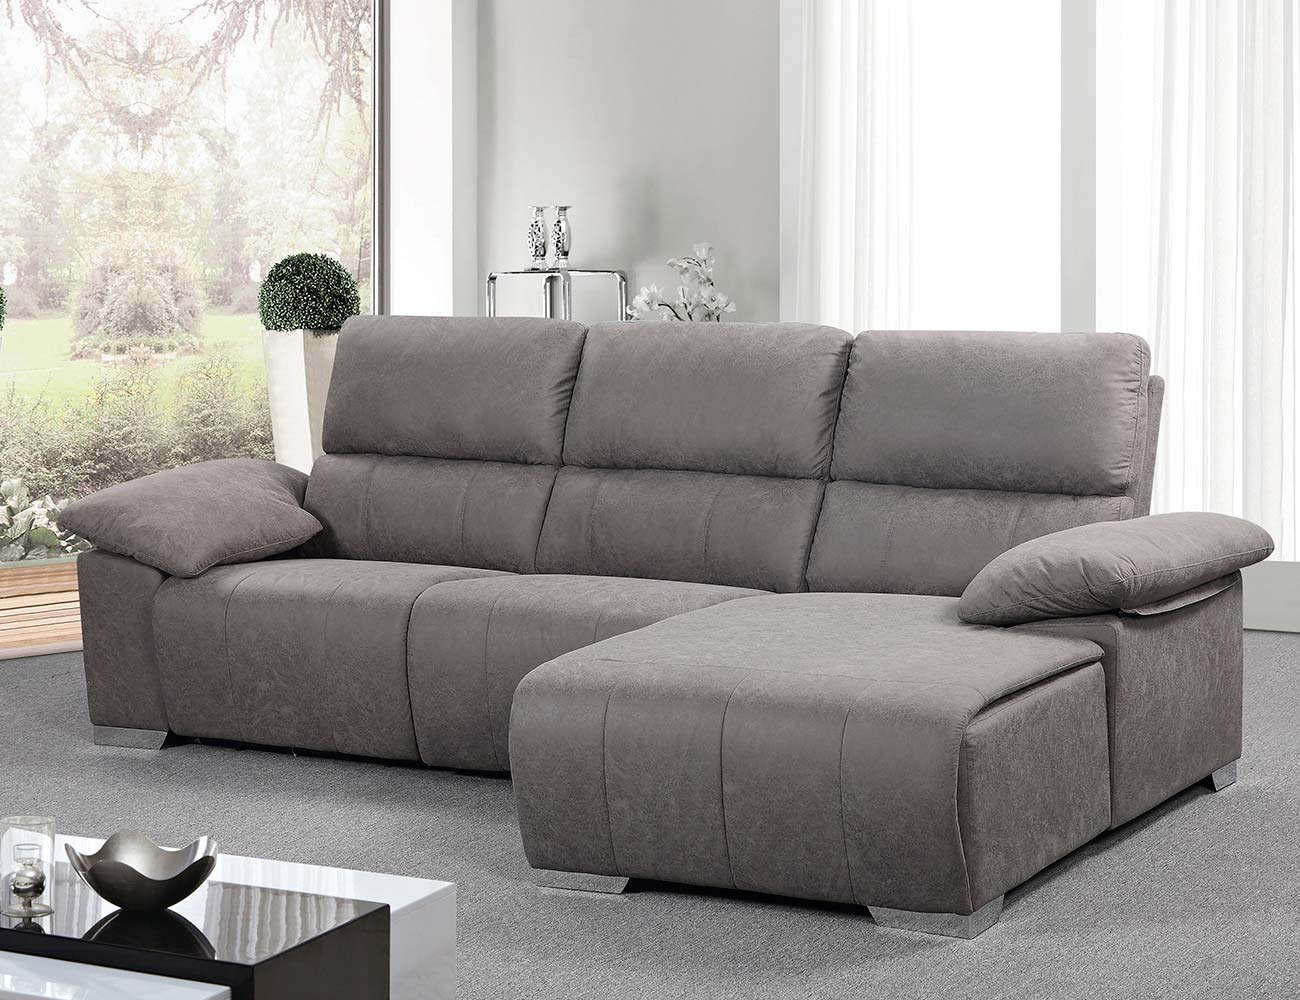 Sofa chaiselongue relax electrico gris marengo